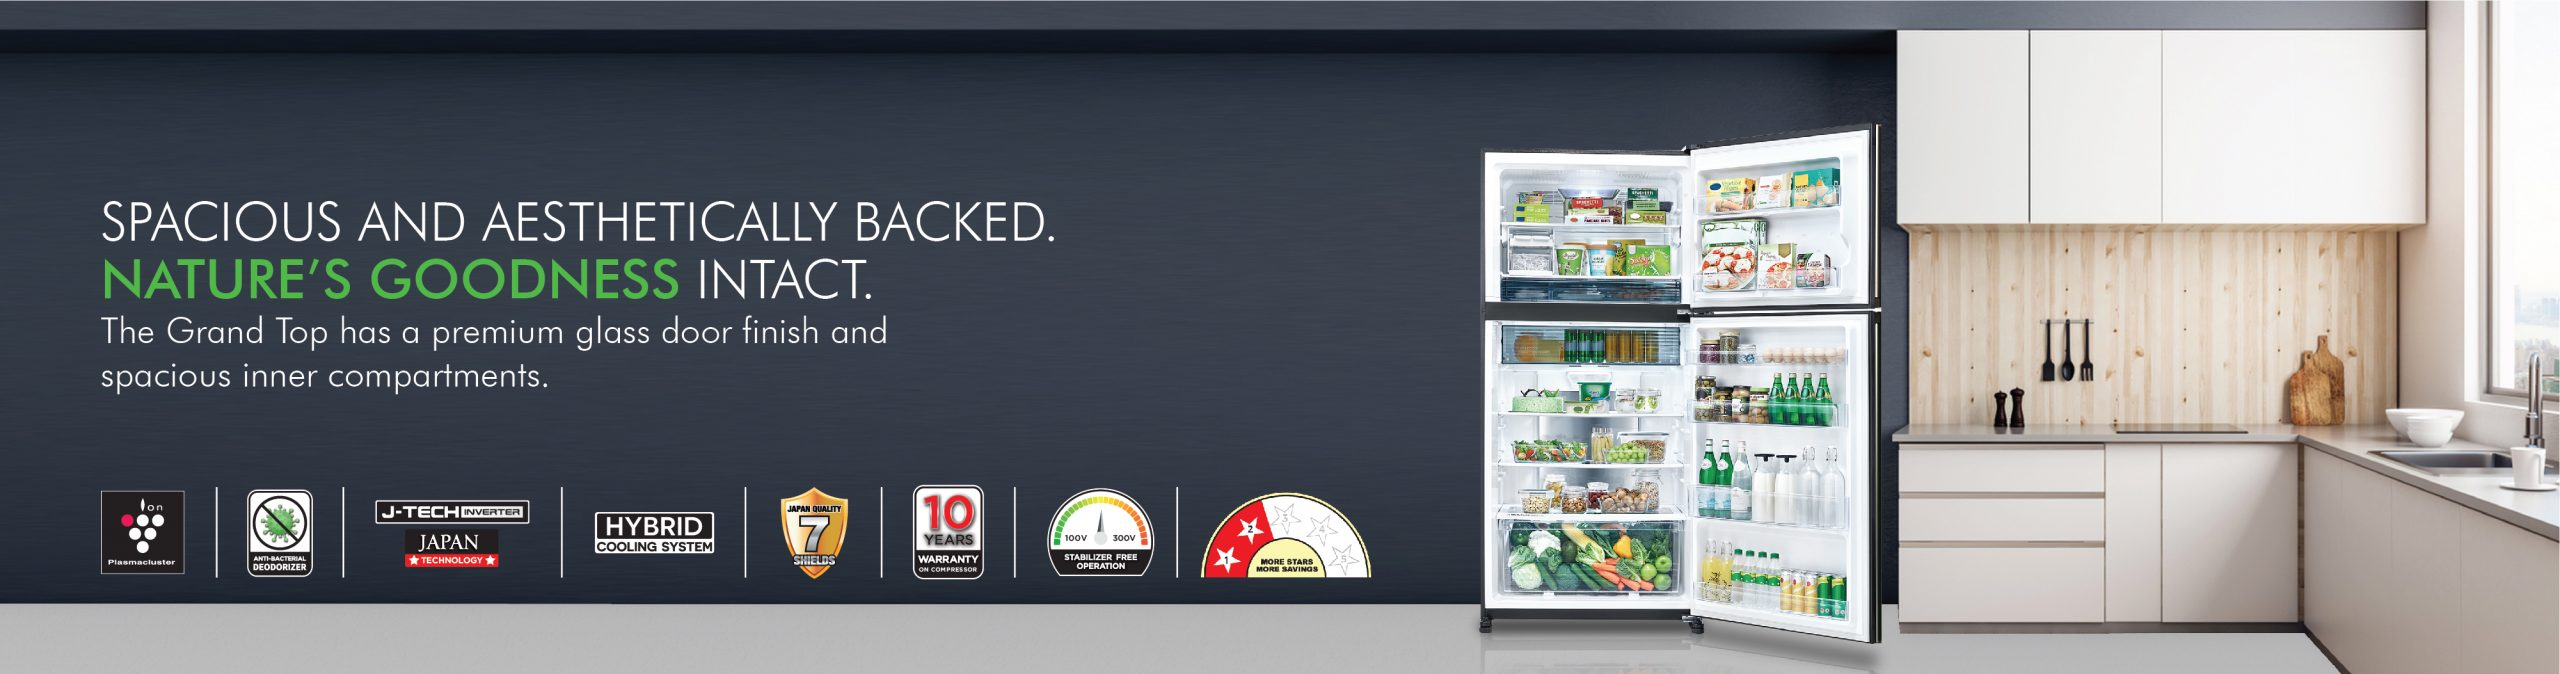 Refrigerator banners for the Website 2021_2-07 GT Glass